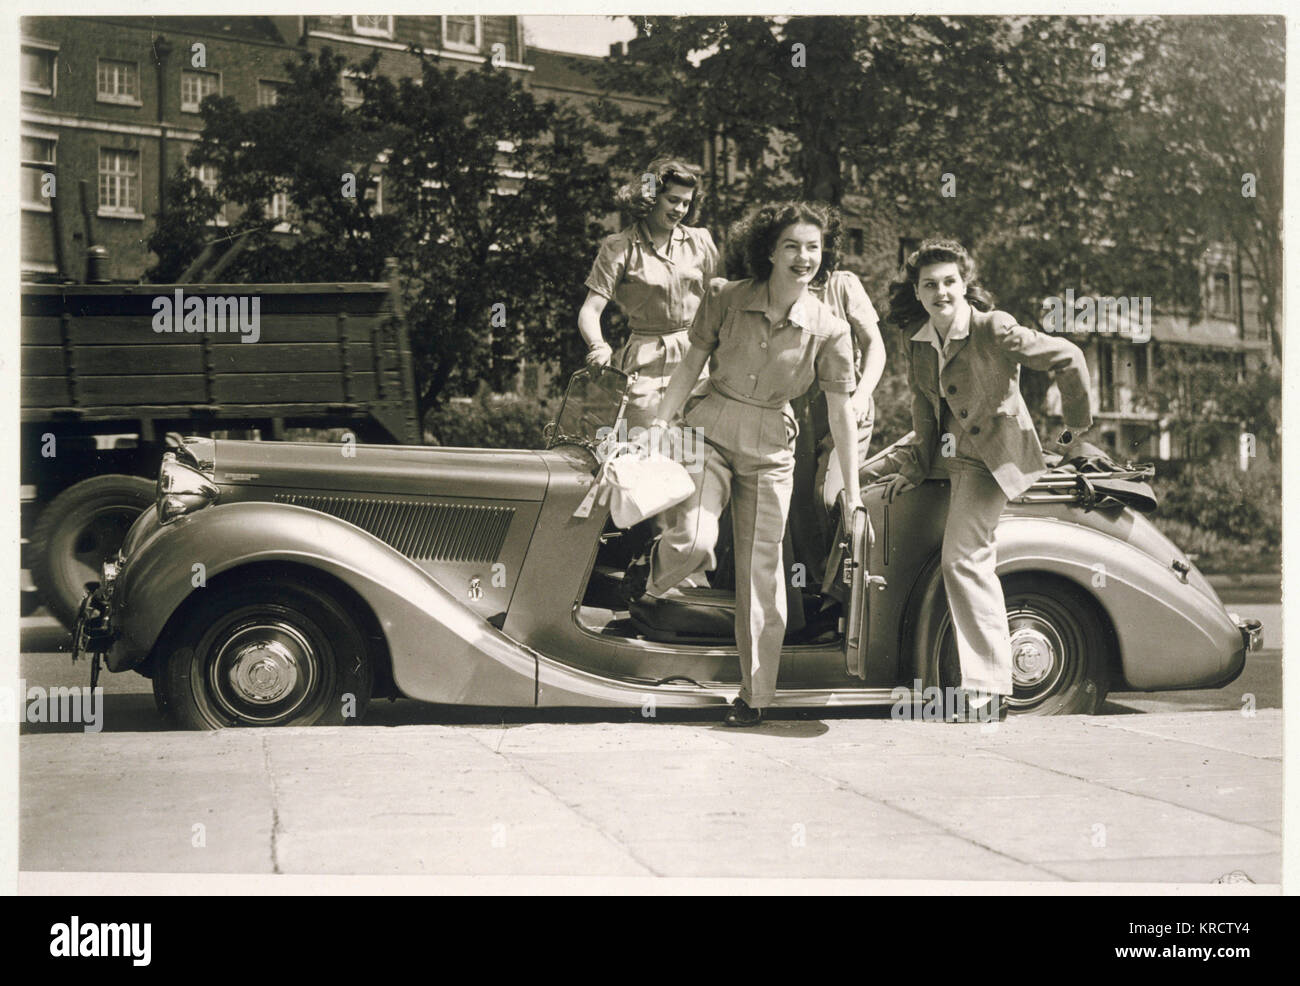 Four glamorous war-time women wearing trouser suits with wide-legged trousers, shirt style blouses & jackets - Stock Image